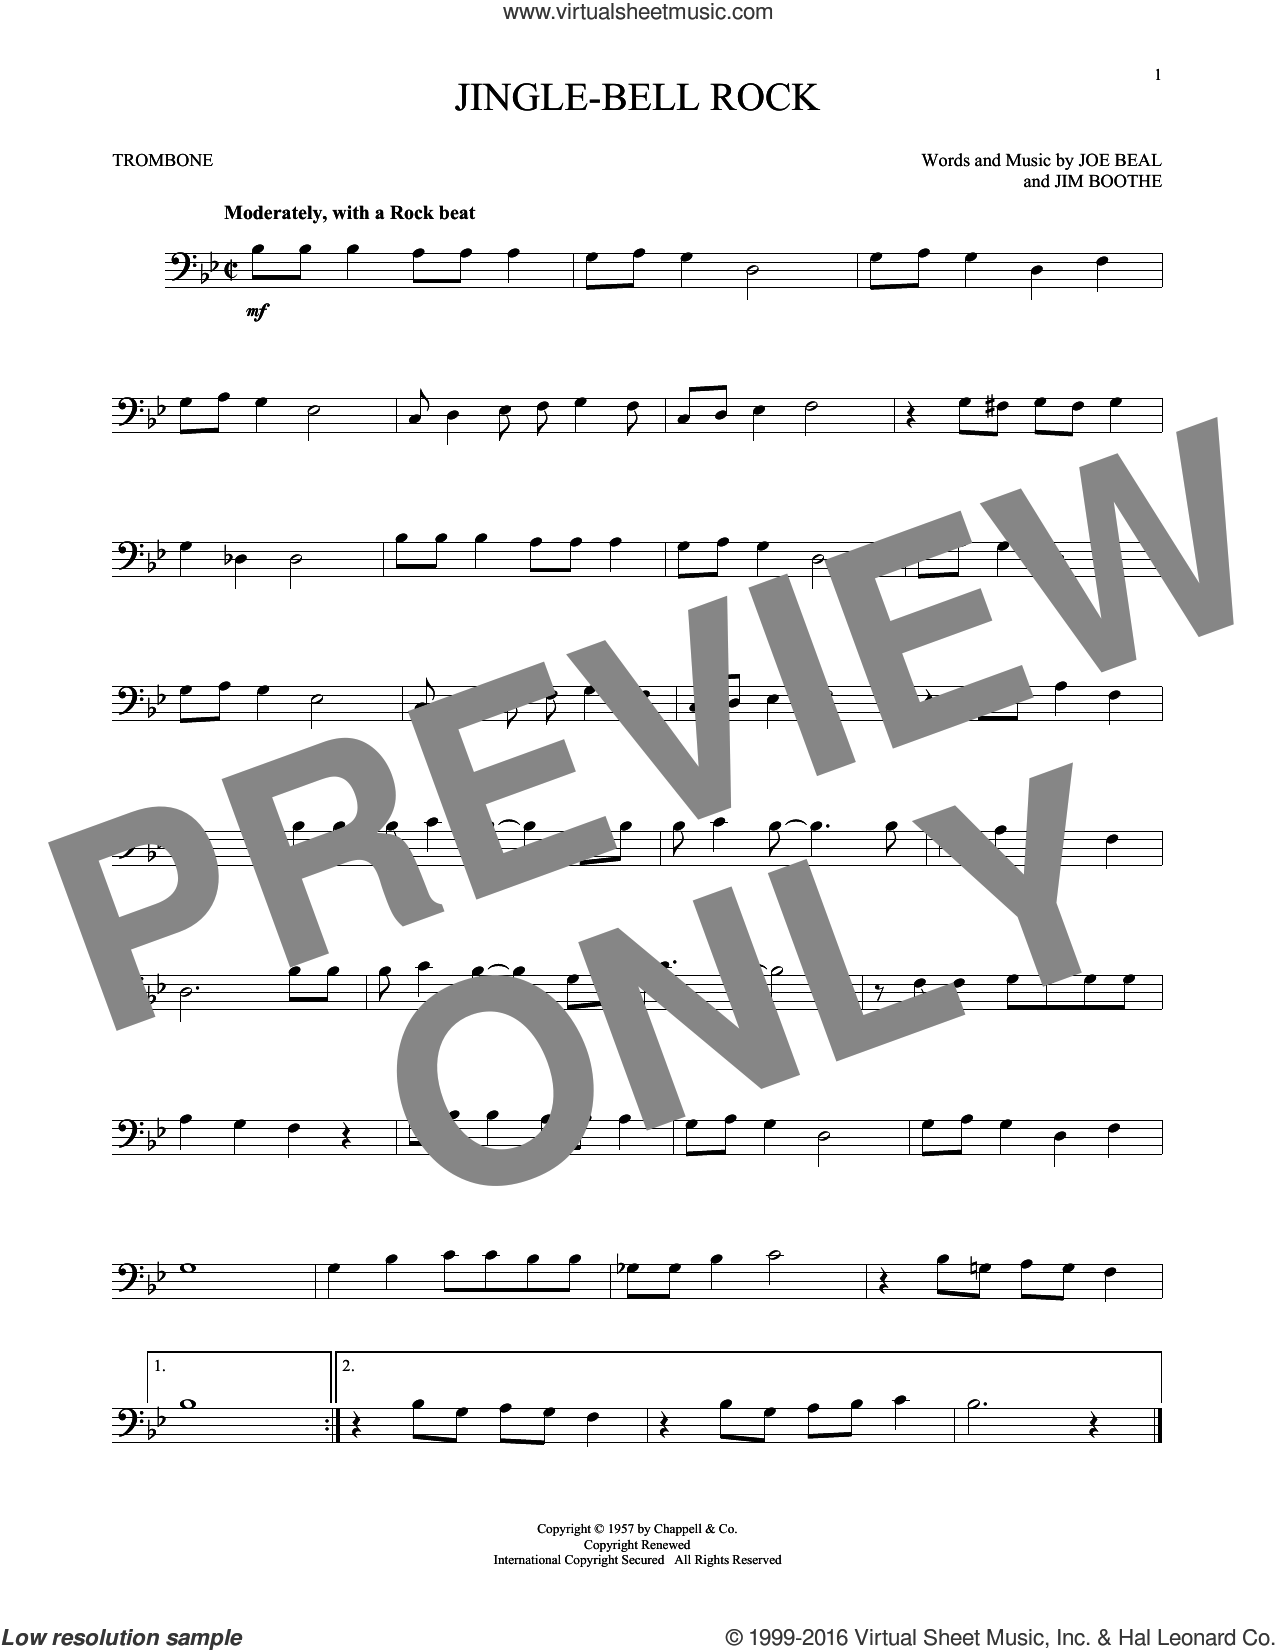 Jingle Bell Rock sheet music for trombone solo by Bobby Helms, Aaron Tippin, Jim Boothe and Joe Beal, Christmas carol score, intermediate trombone. Score Image Preview.